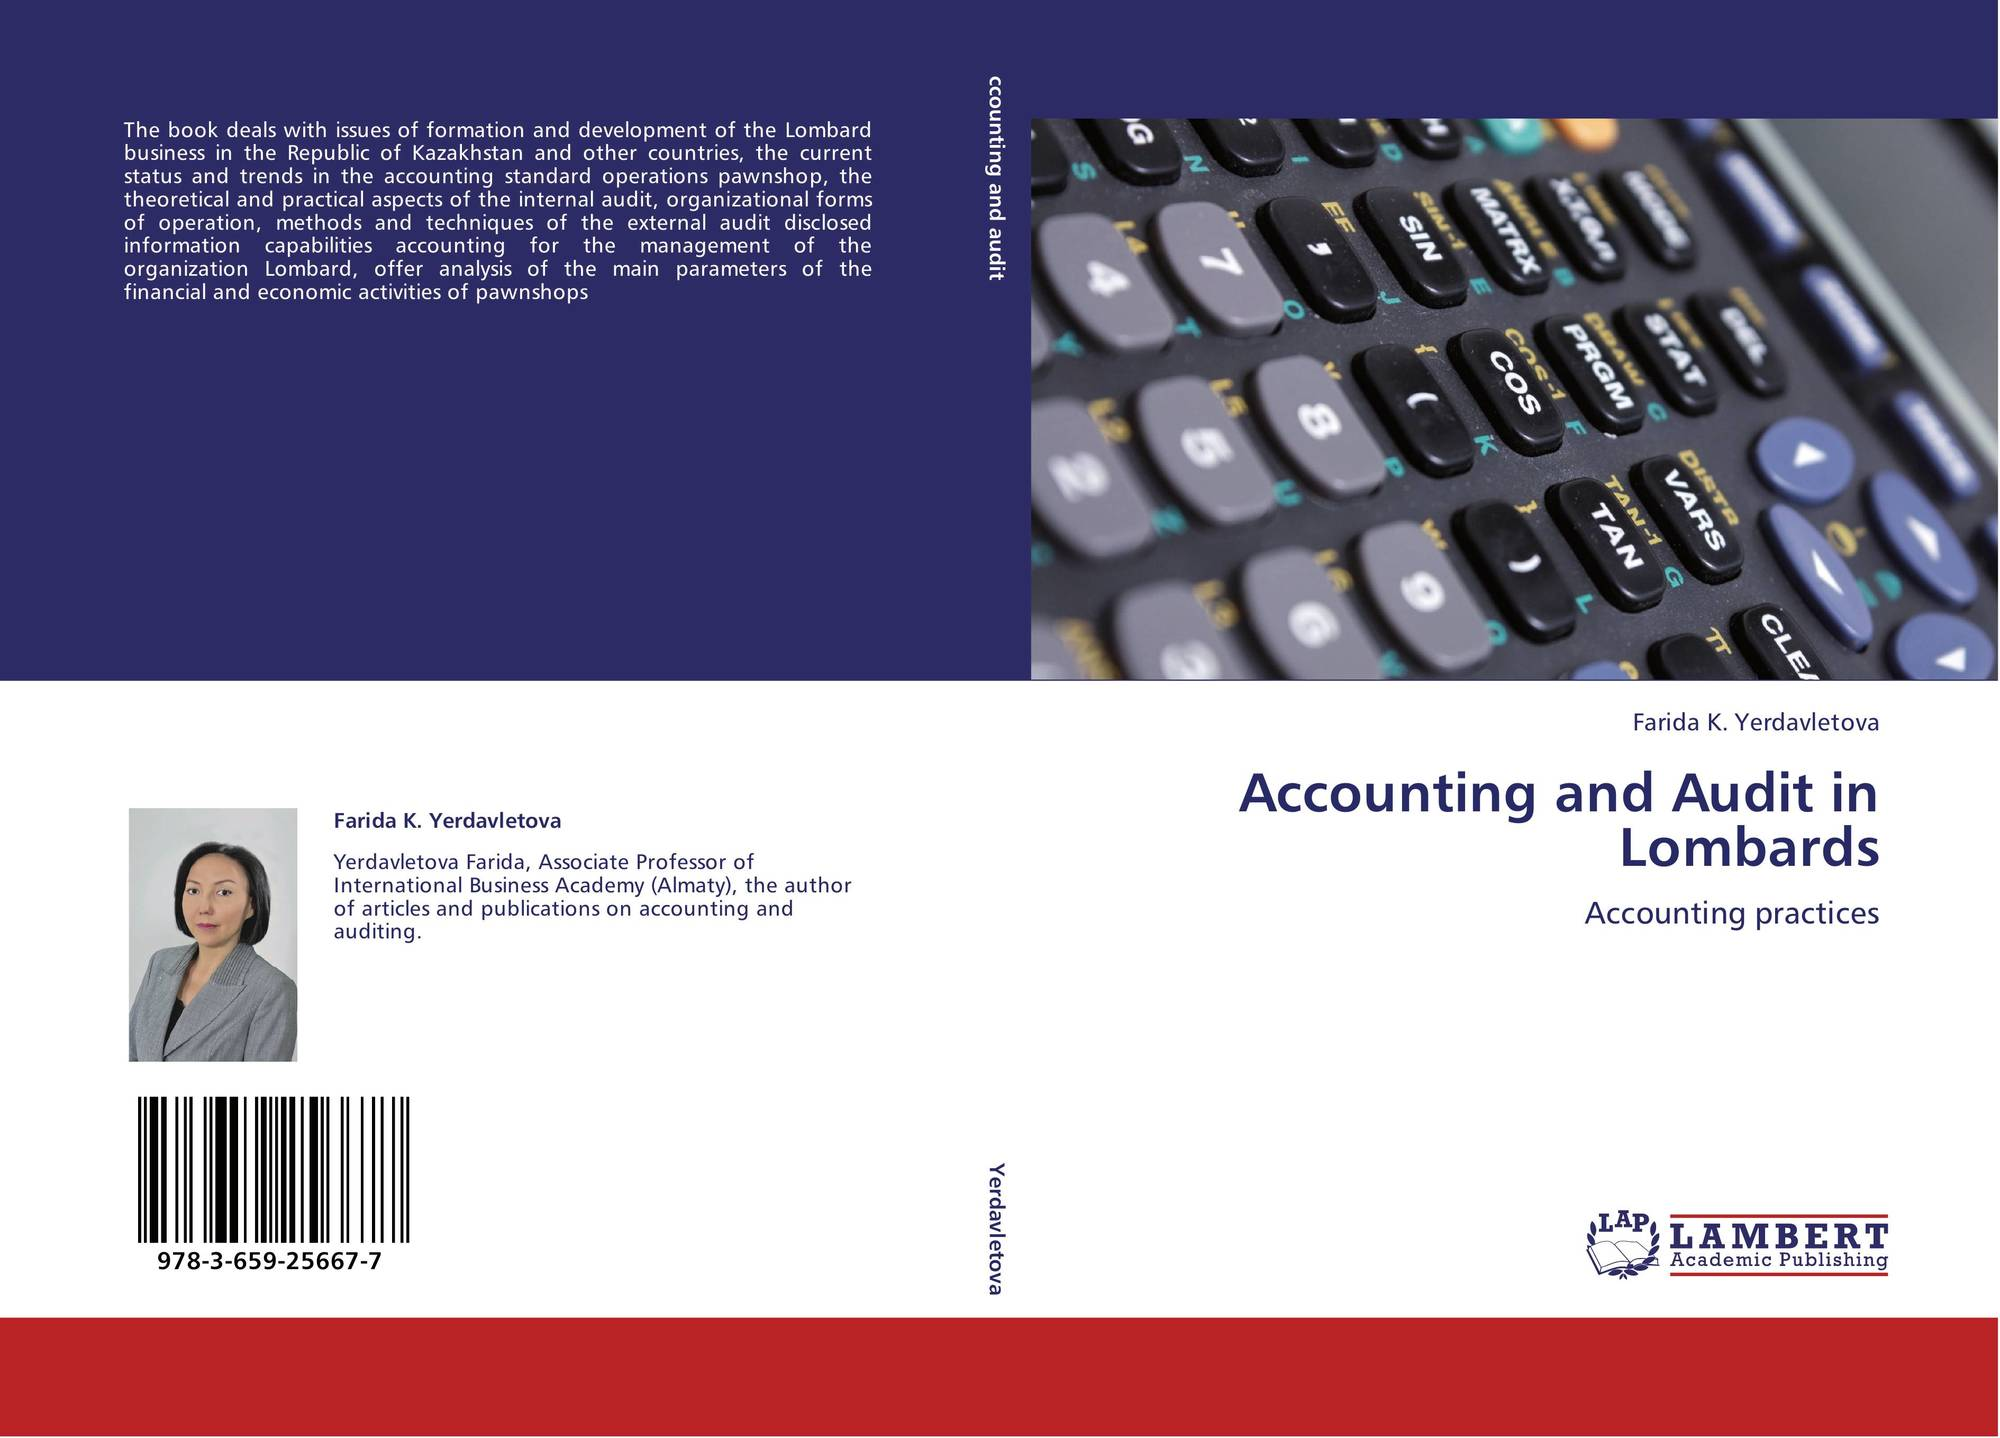 auditing standards current issues in accounting